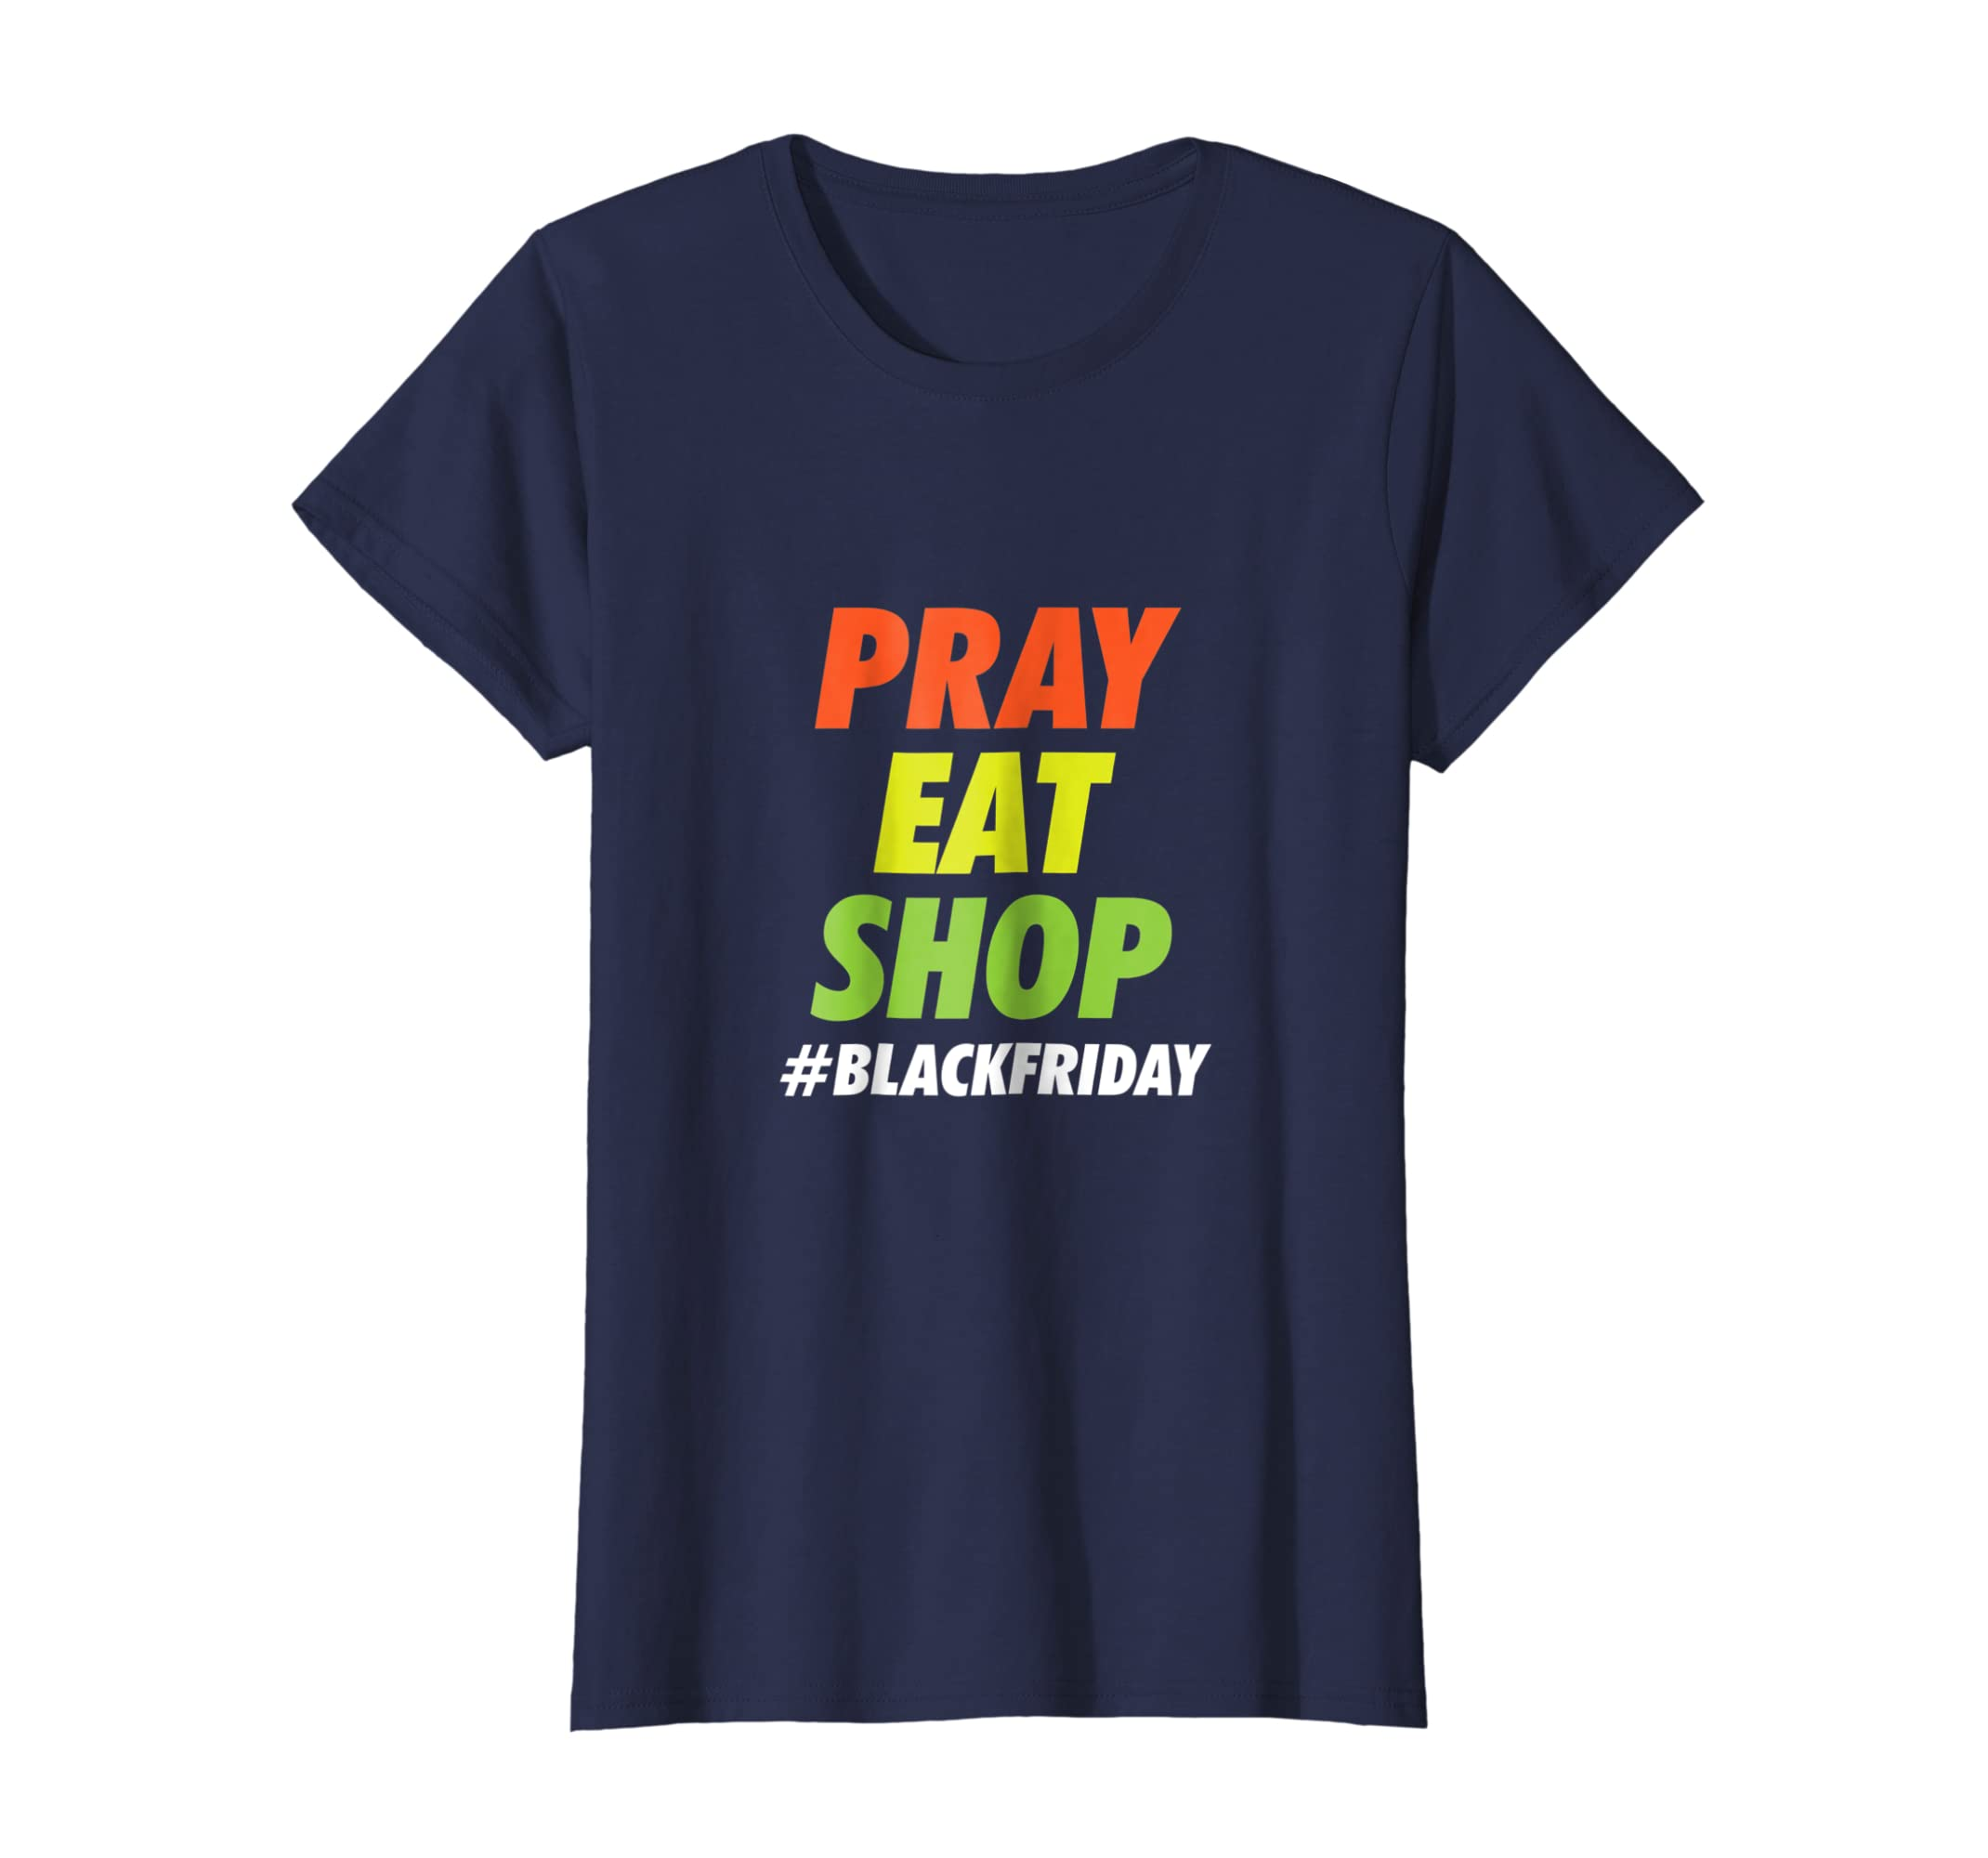 fe11d0c2827e Amazon.com  Eat Pray Shop Tshirt Black Friday Tee  Clothing